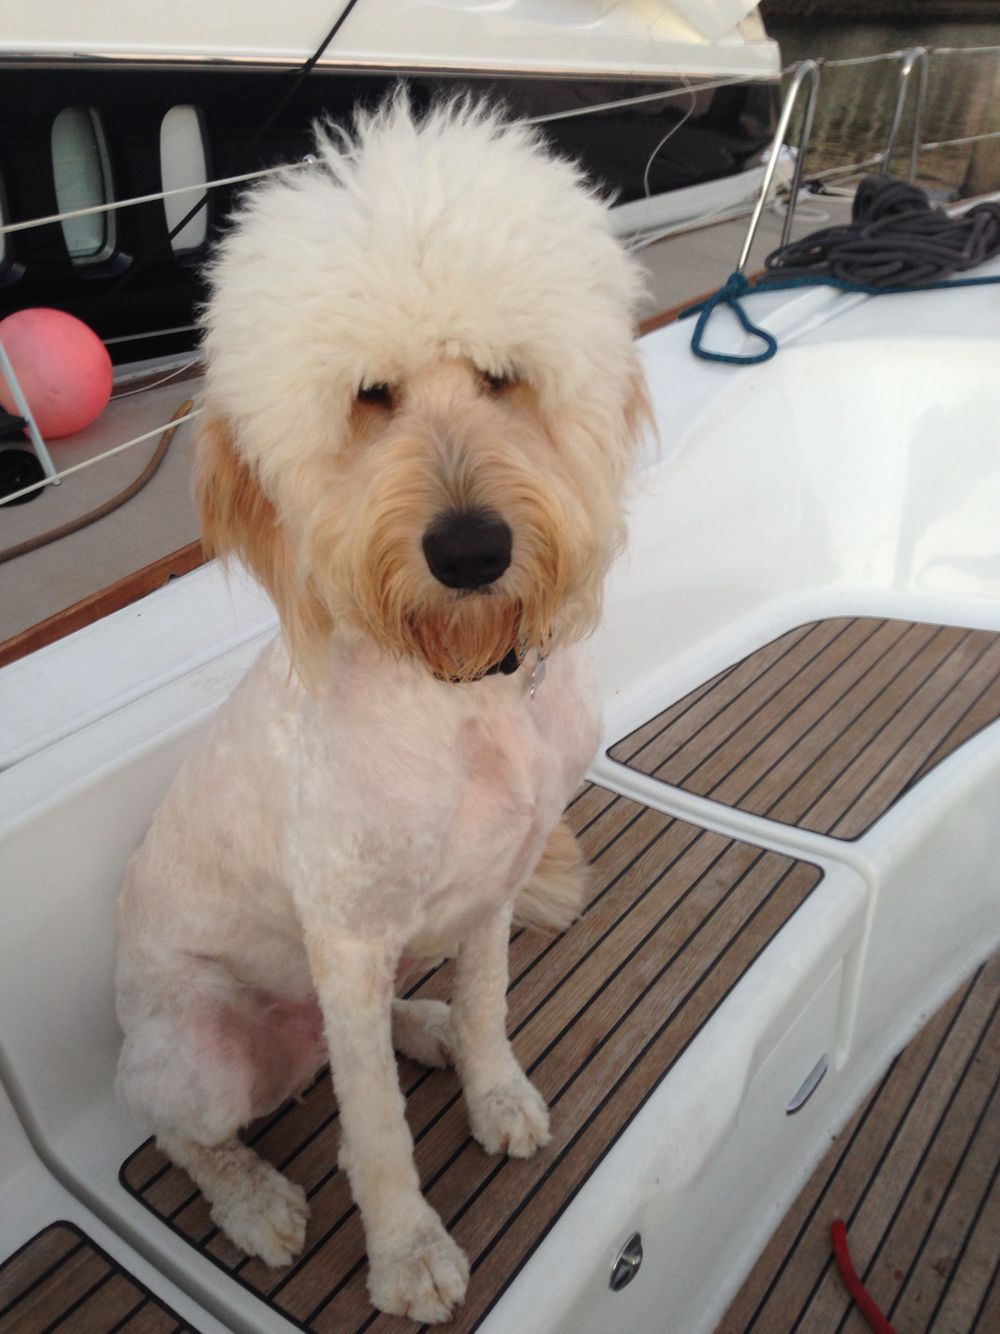 Worst Goldendoodle Haircut Ever Dont Let Your Groomer Do This